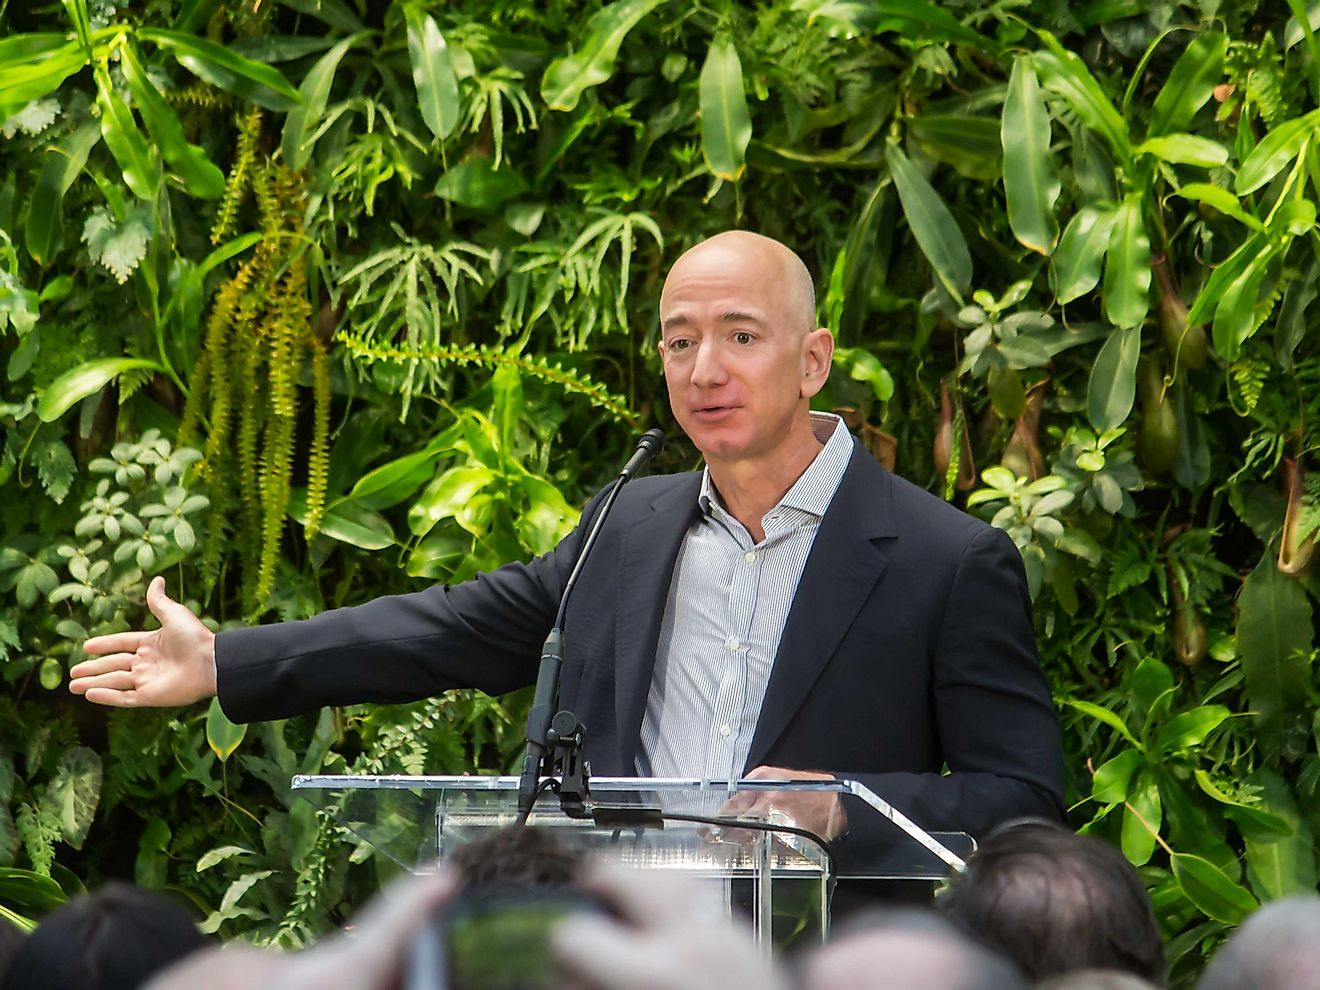 Jeff Bezos has a staggering net worth of $123.9 billion thanks to the success of Amazon. Image credit: wikimedia.org